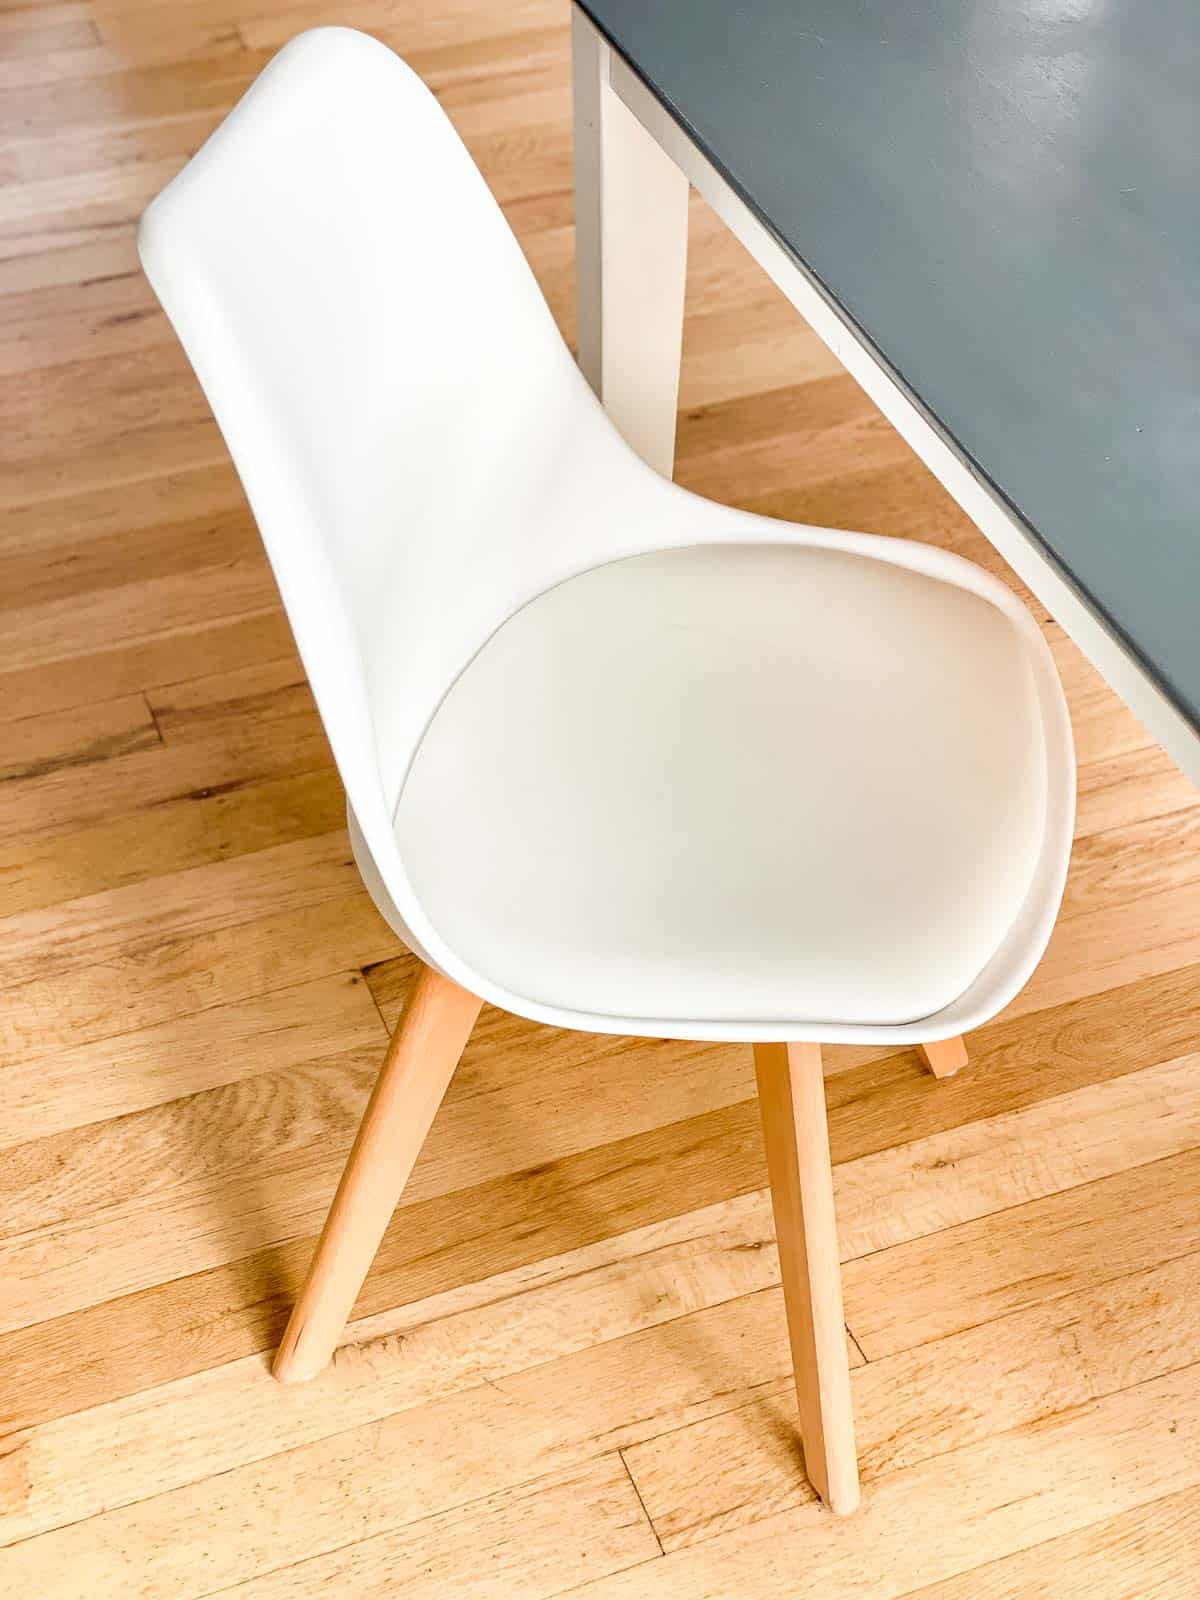 white midcentury modern tulip chair next to gray wood table